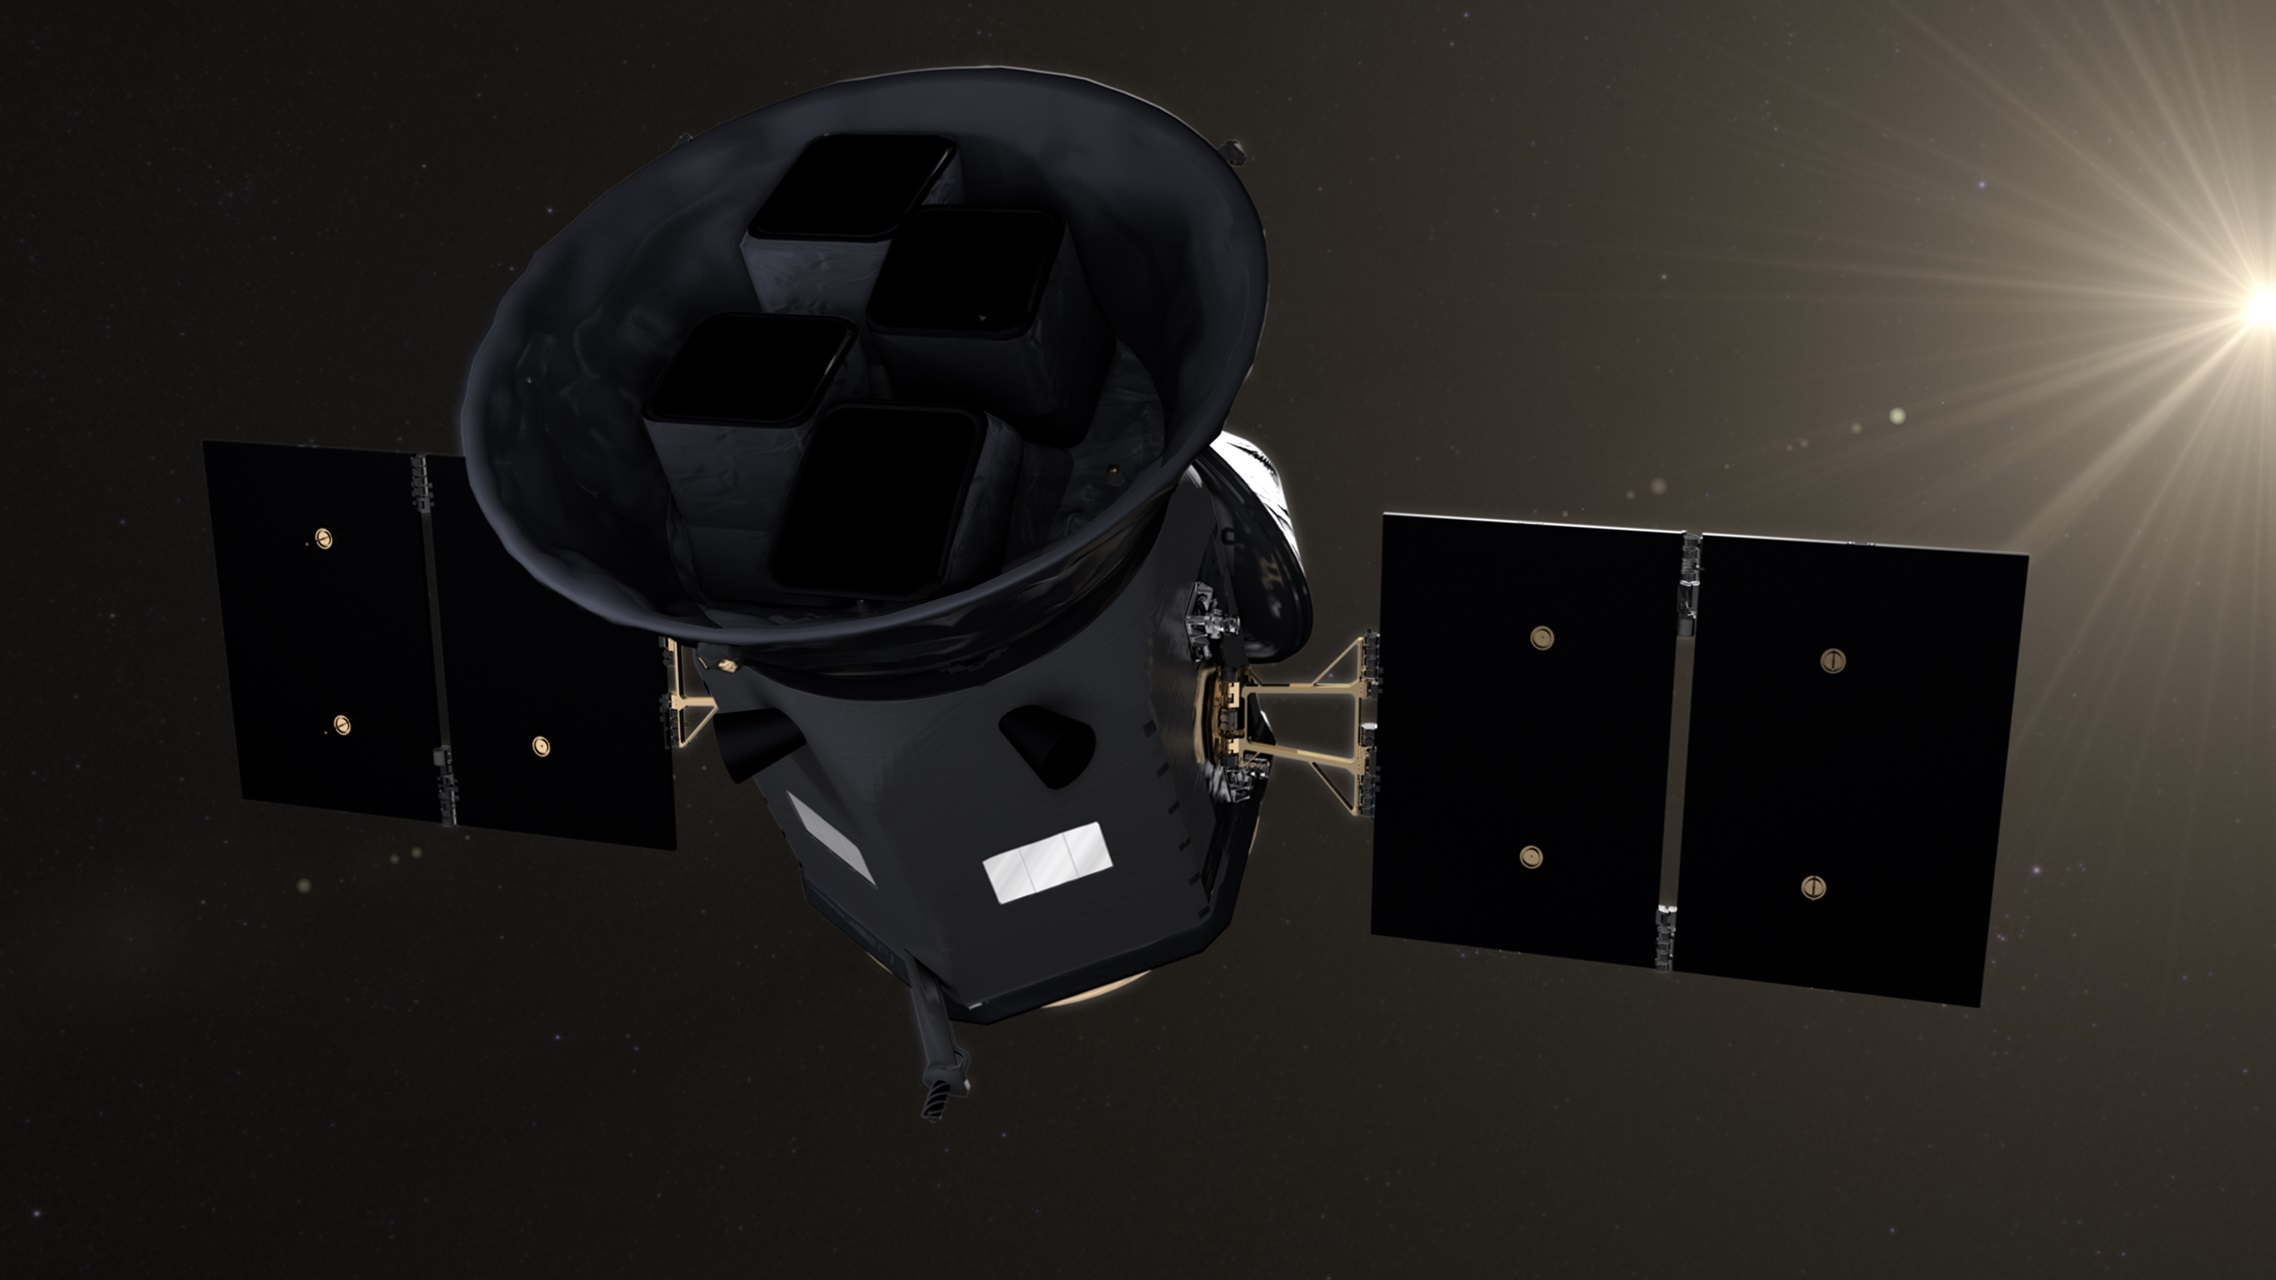 NASA's New Planet Hunter TESS Set To Launch Monday